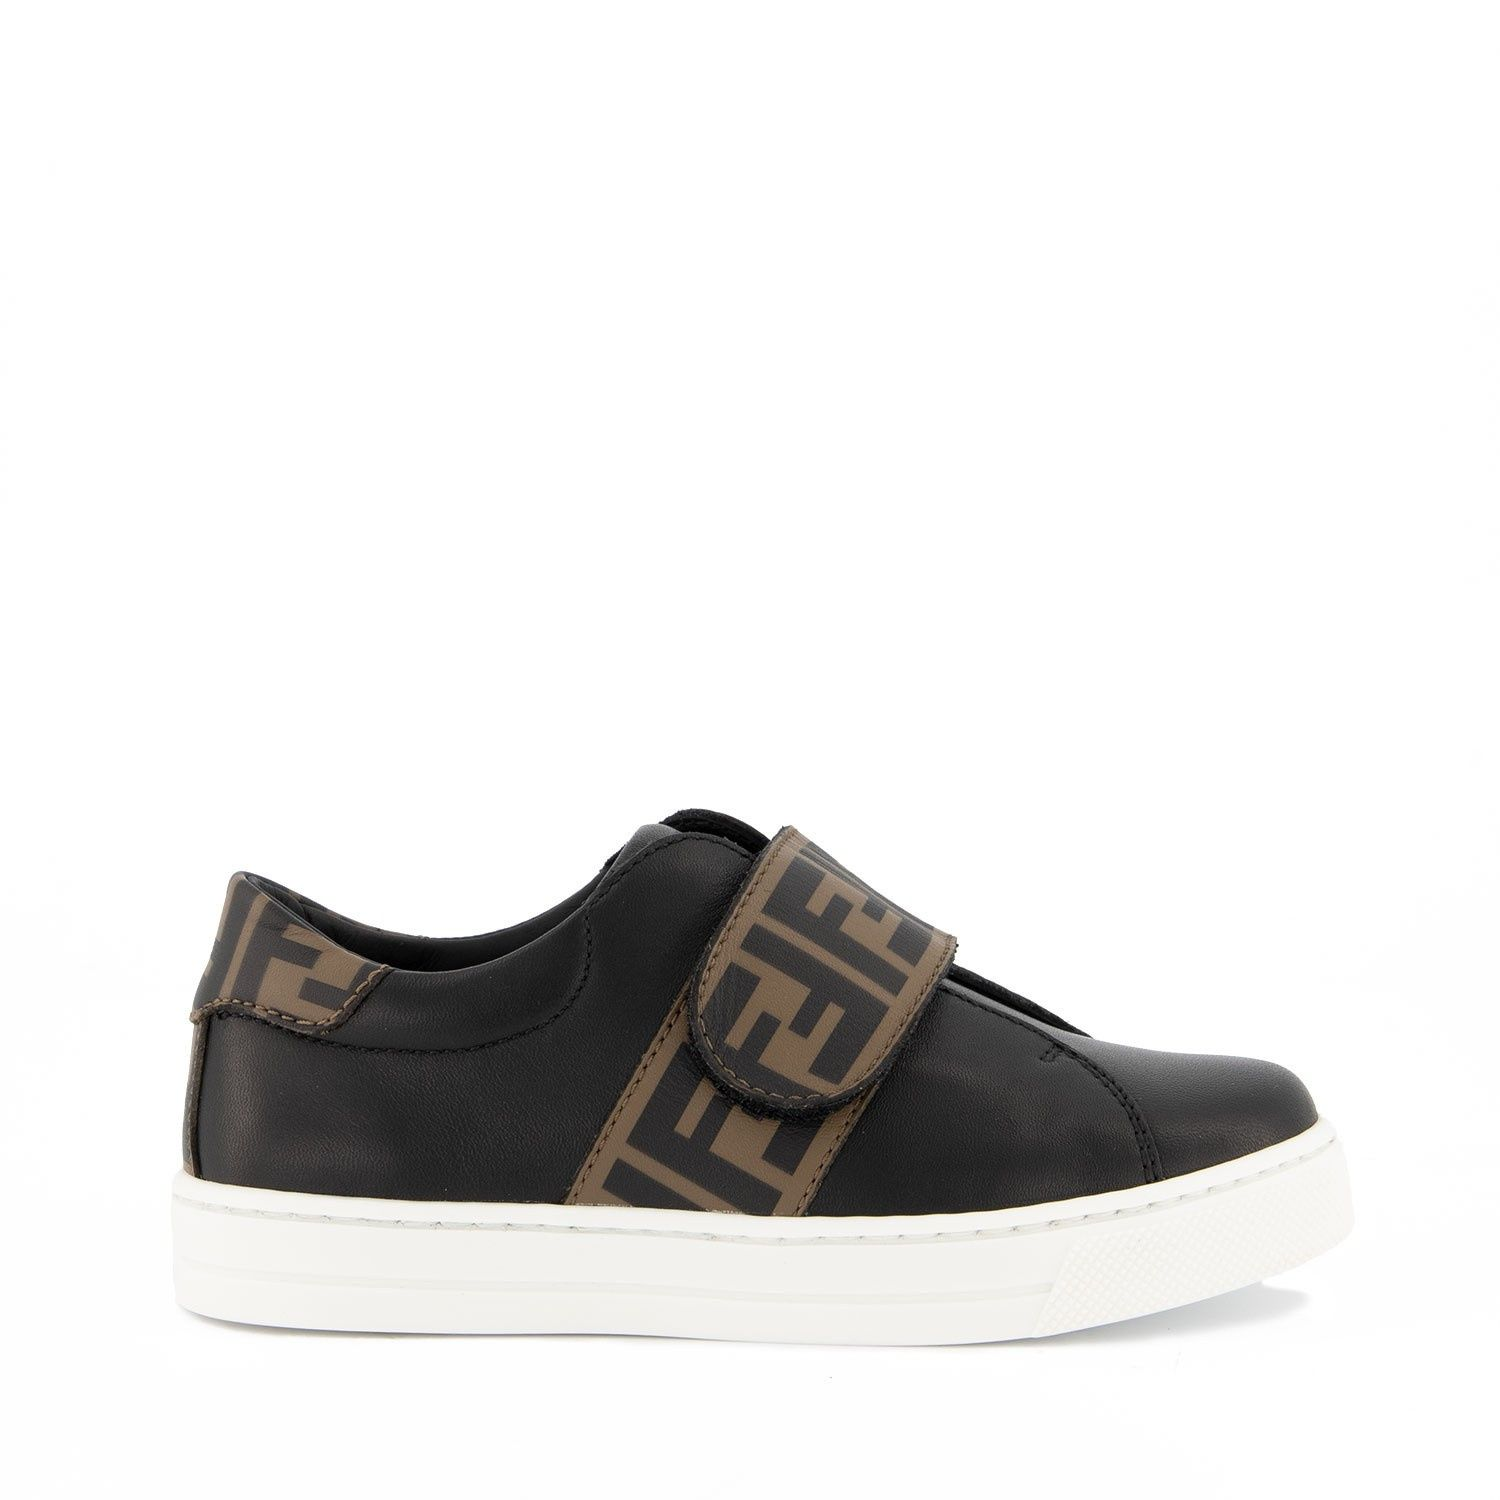 Picture of Fendi JMR326 kids sneakers black